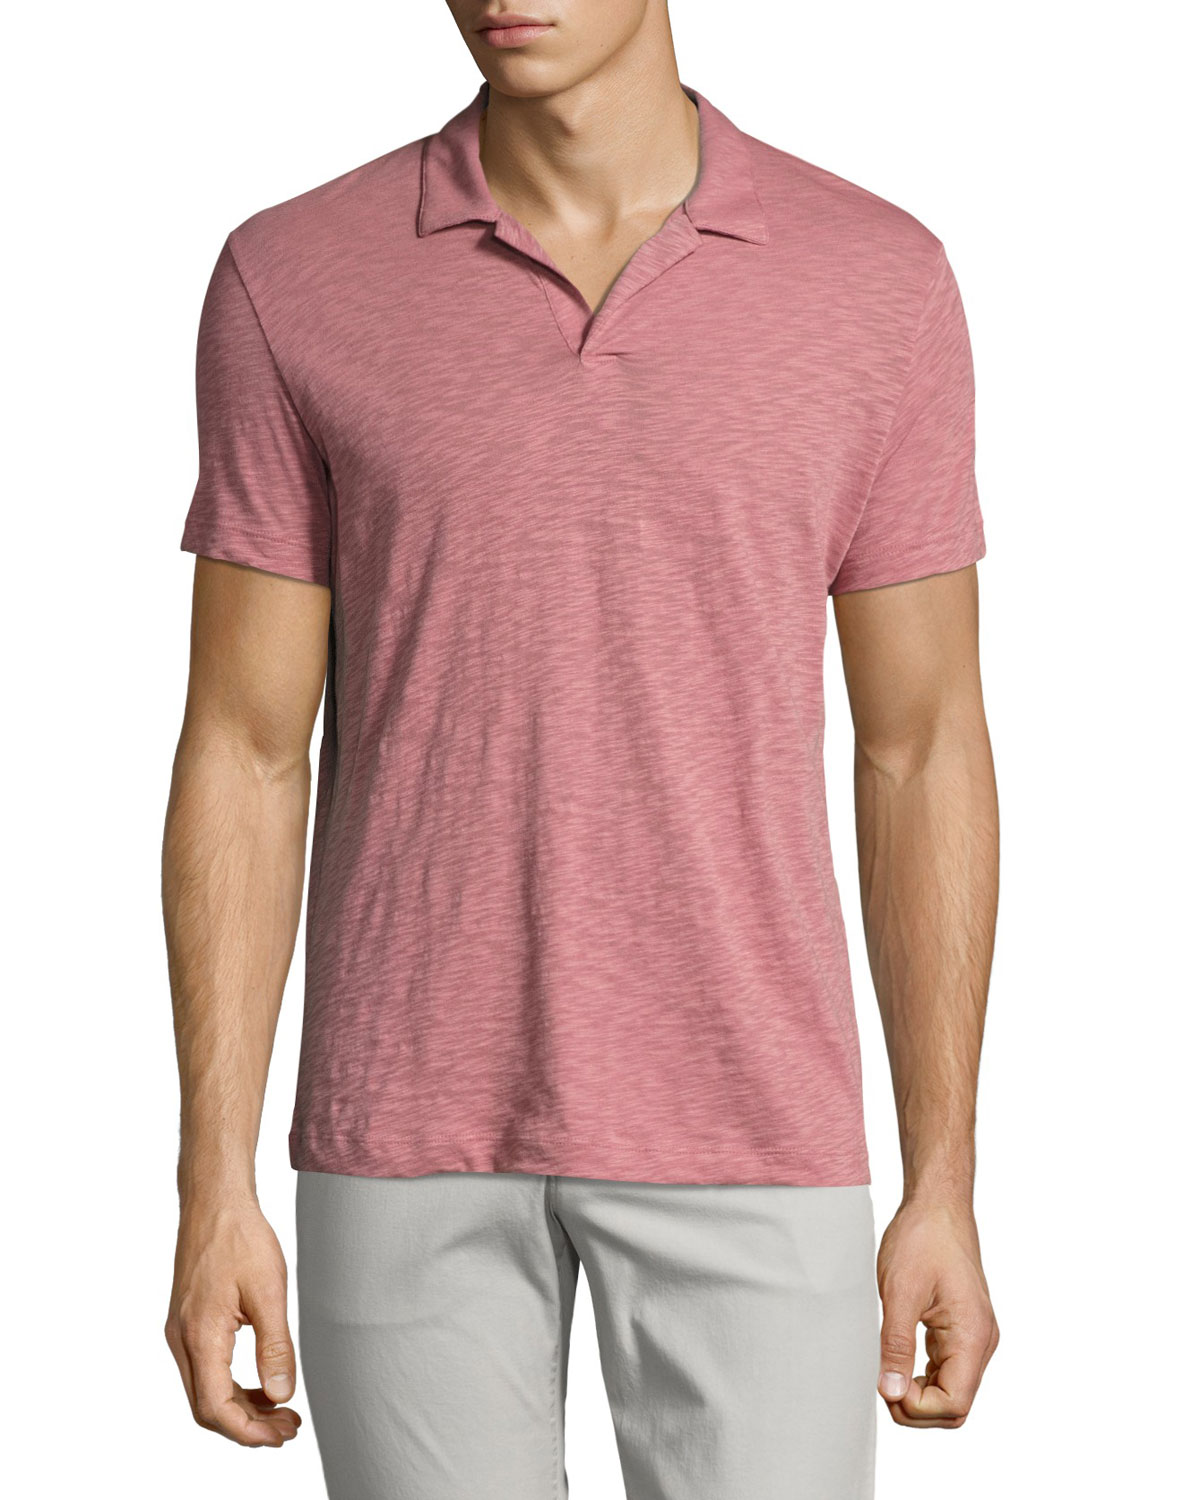 Willem Nebulous Slub Polo Shirt, Pink